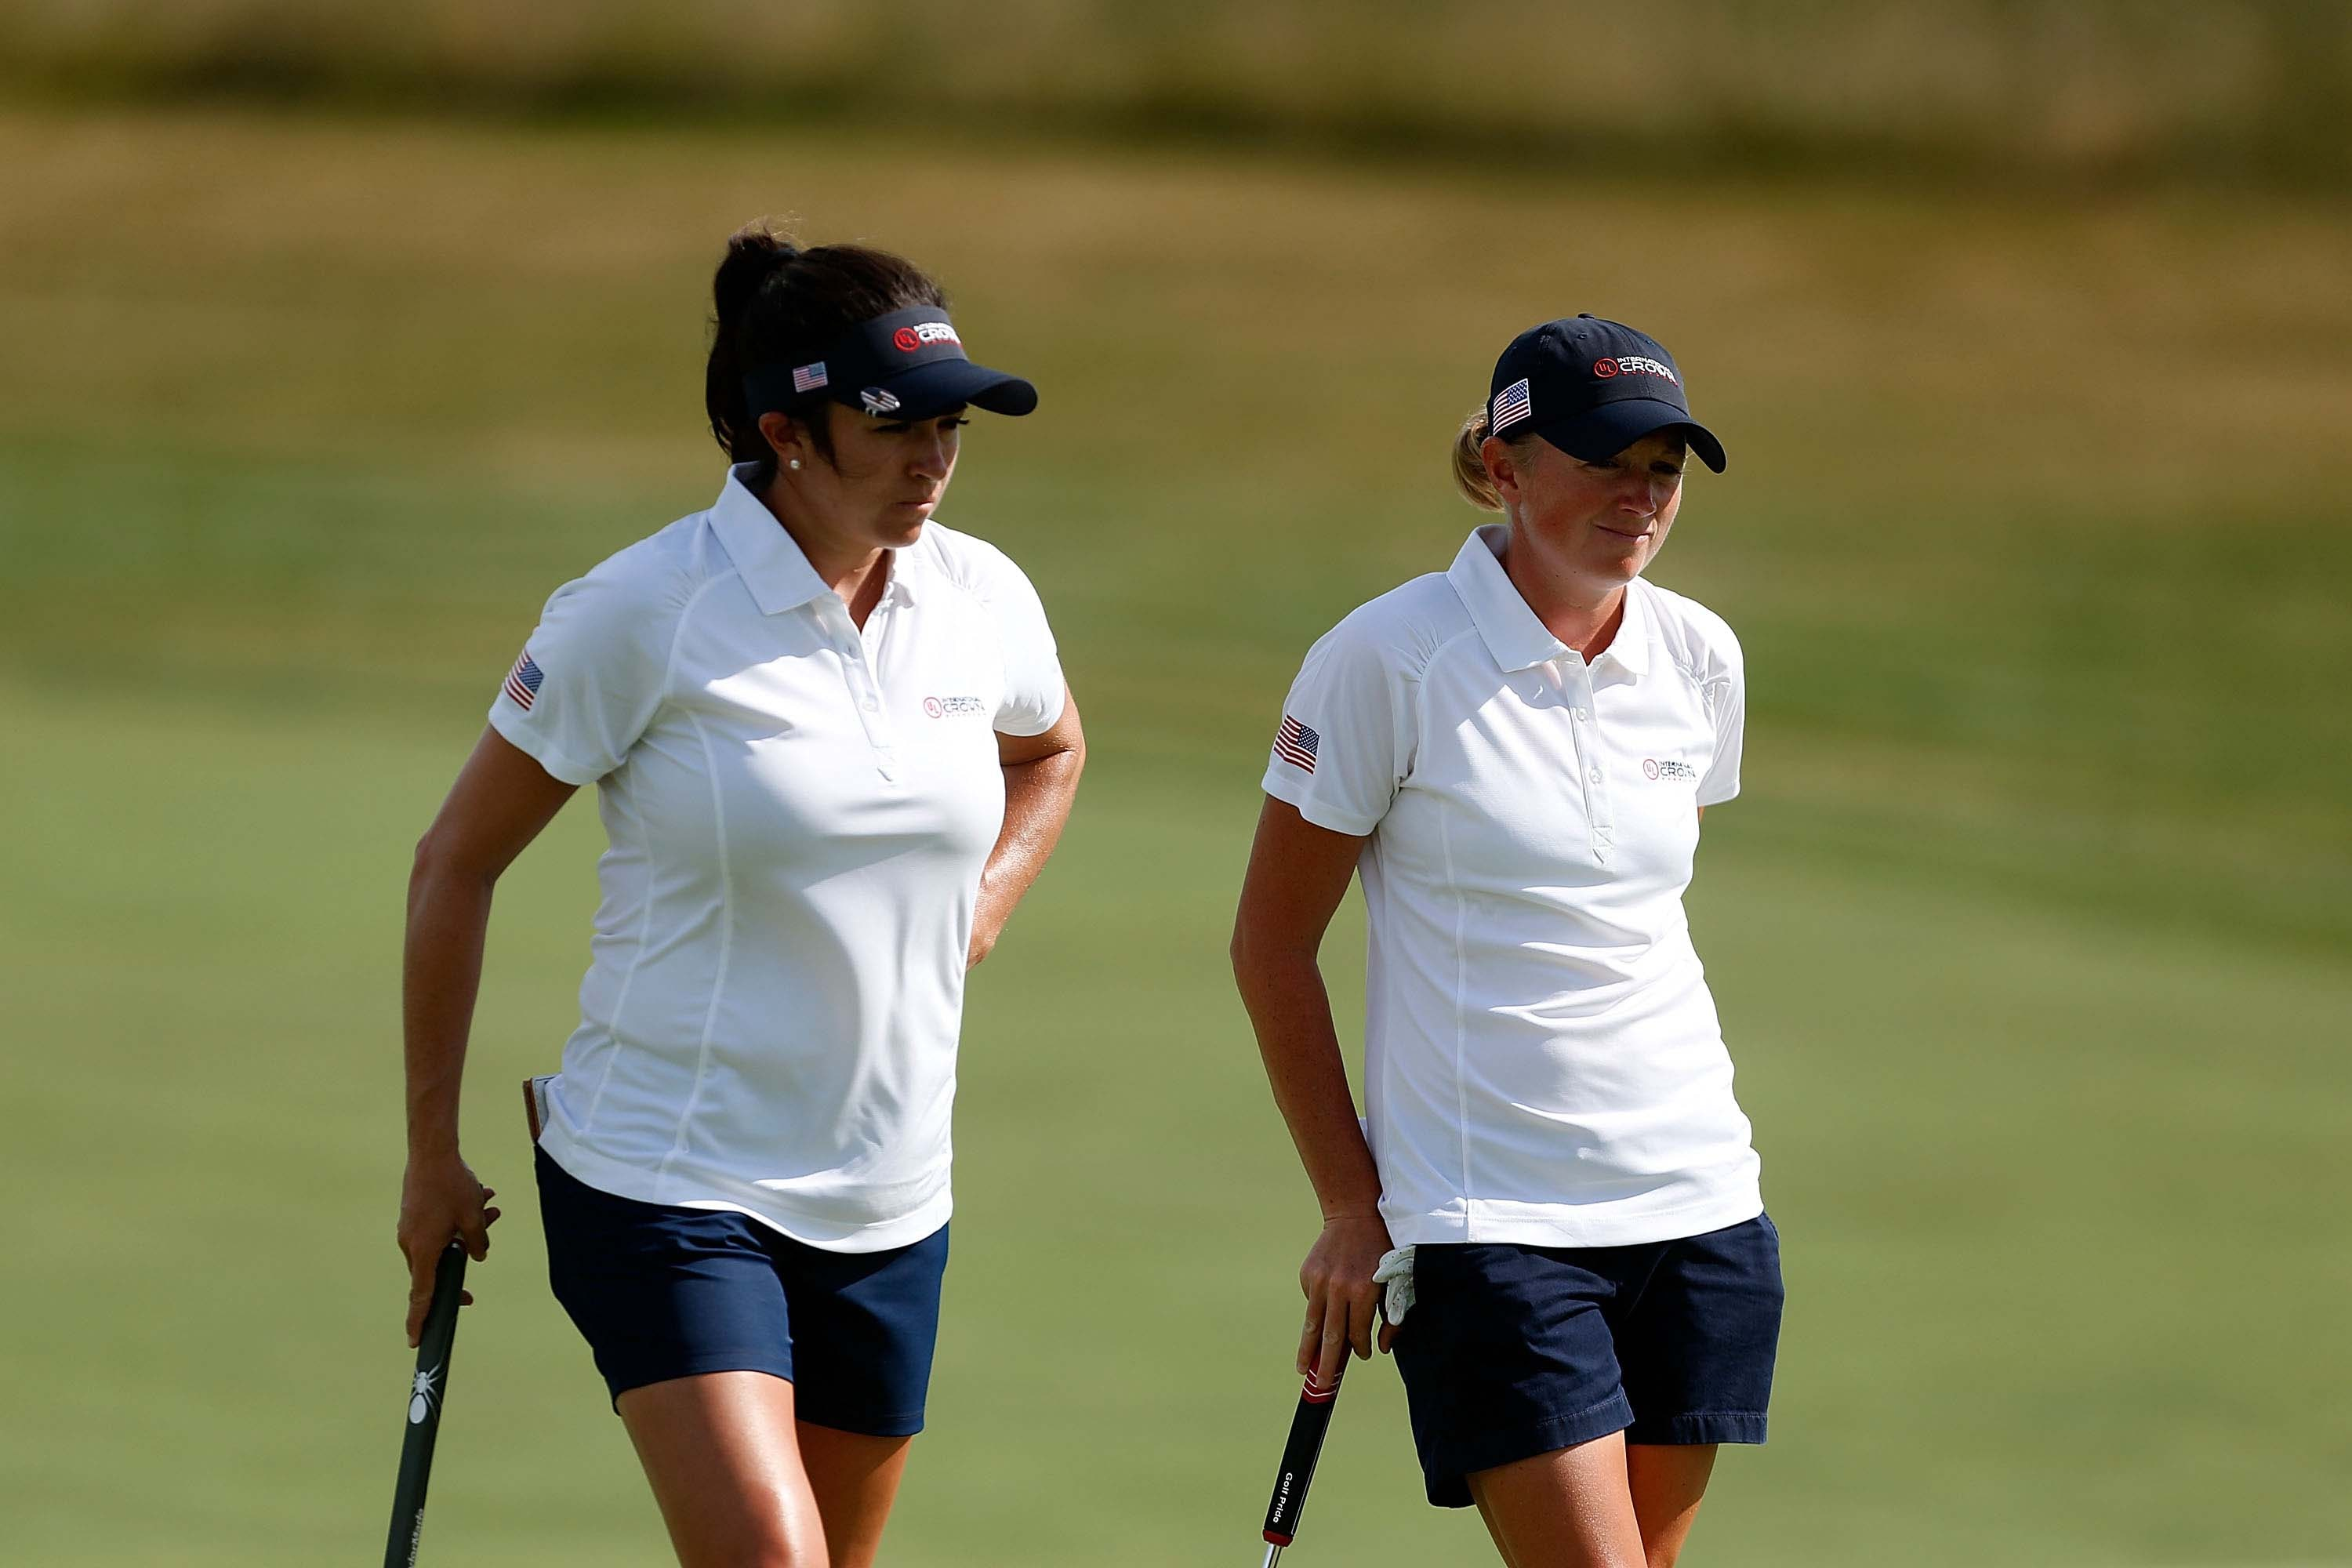 Gerina Piller and Stacy Lewis